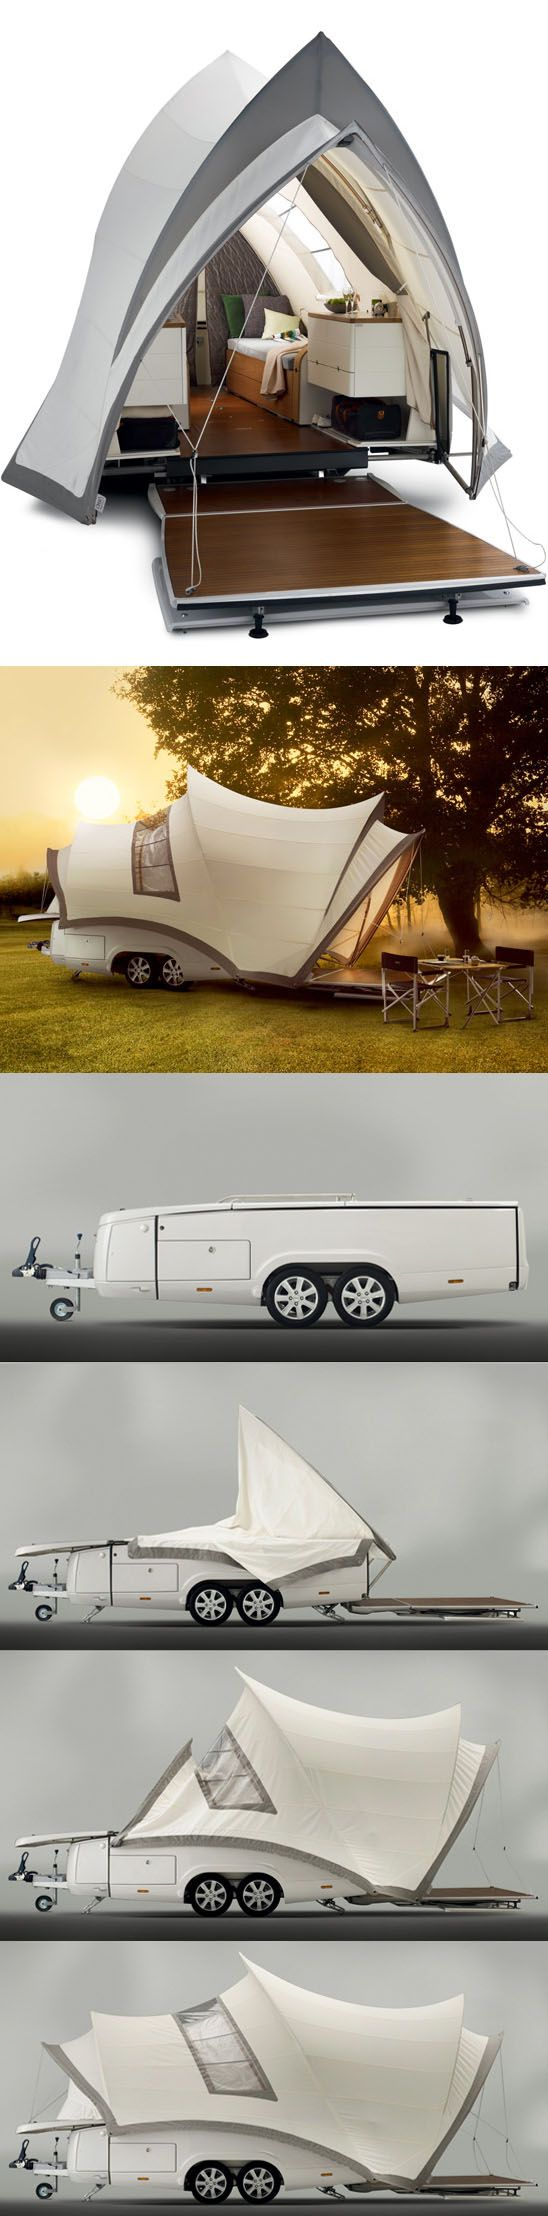 The Opera pop up camper by Ysin, inspired by the Sydney Opera House.